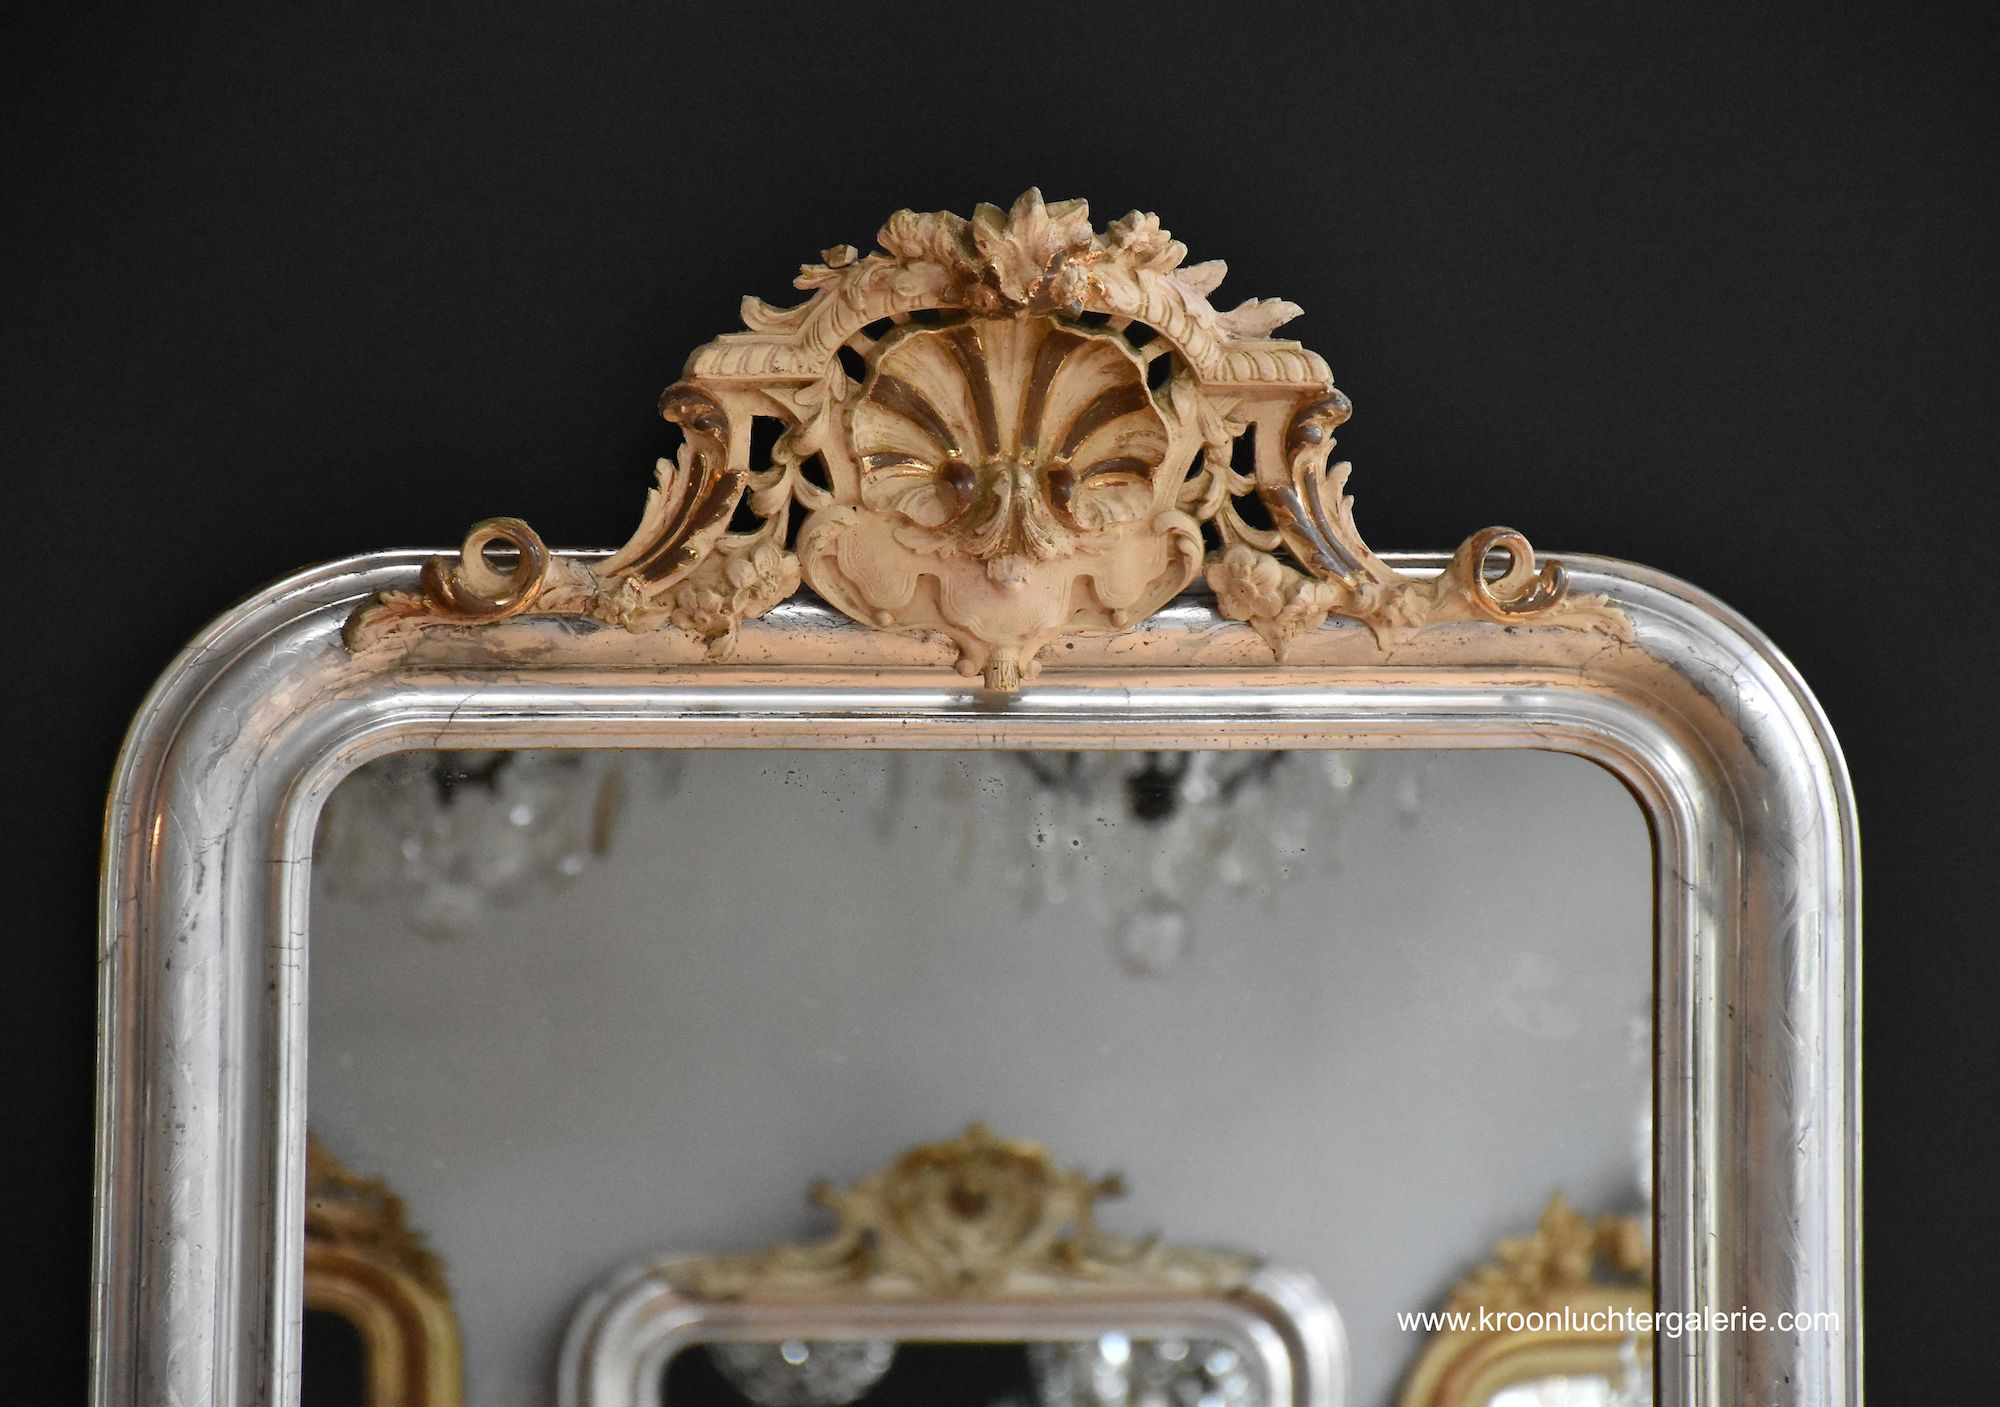 Large antique French mirror with a crest